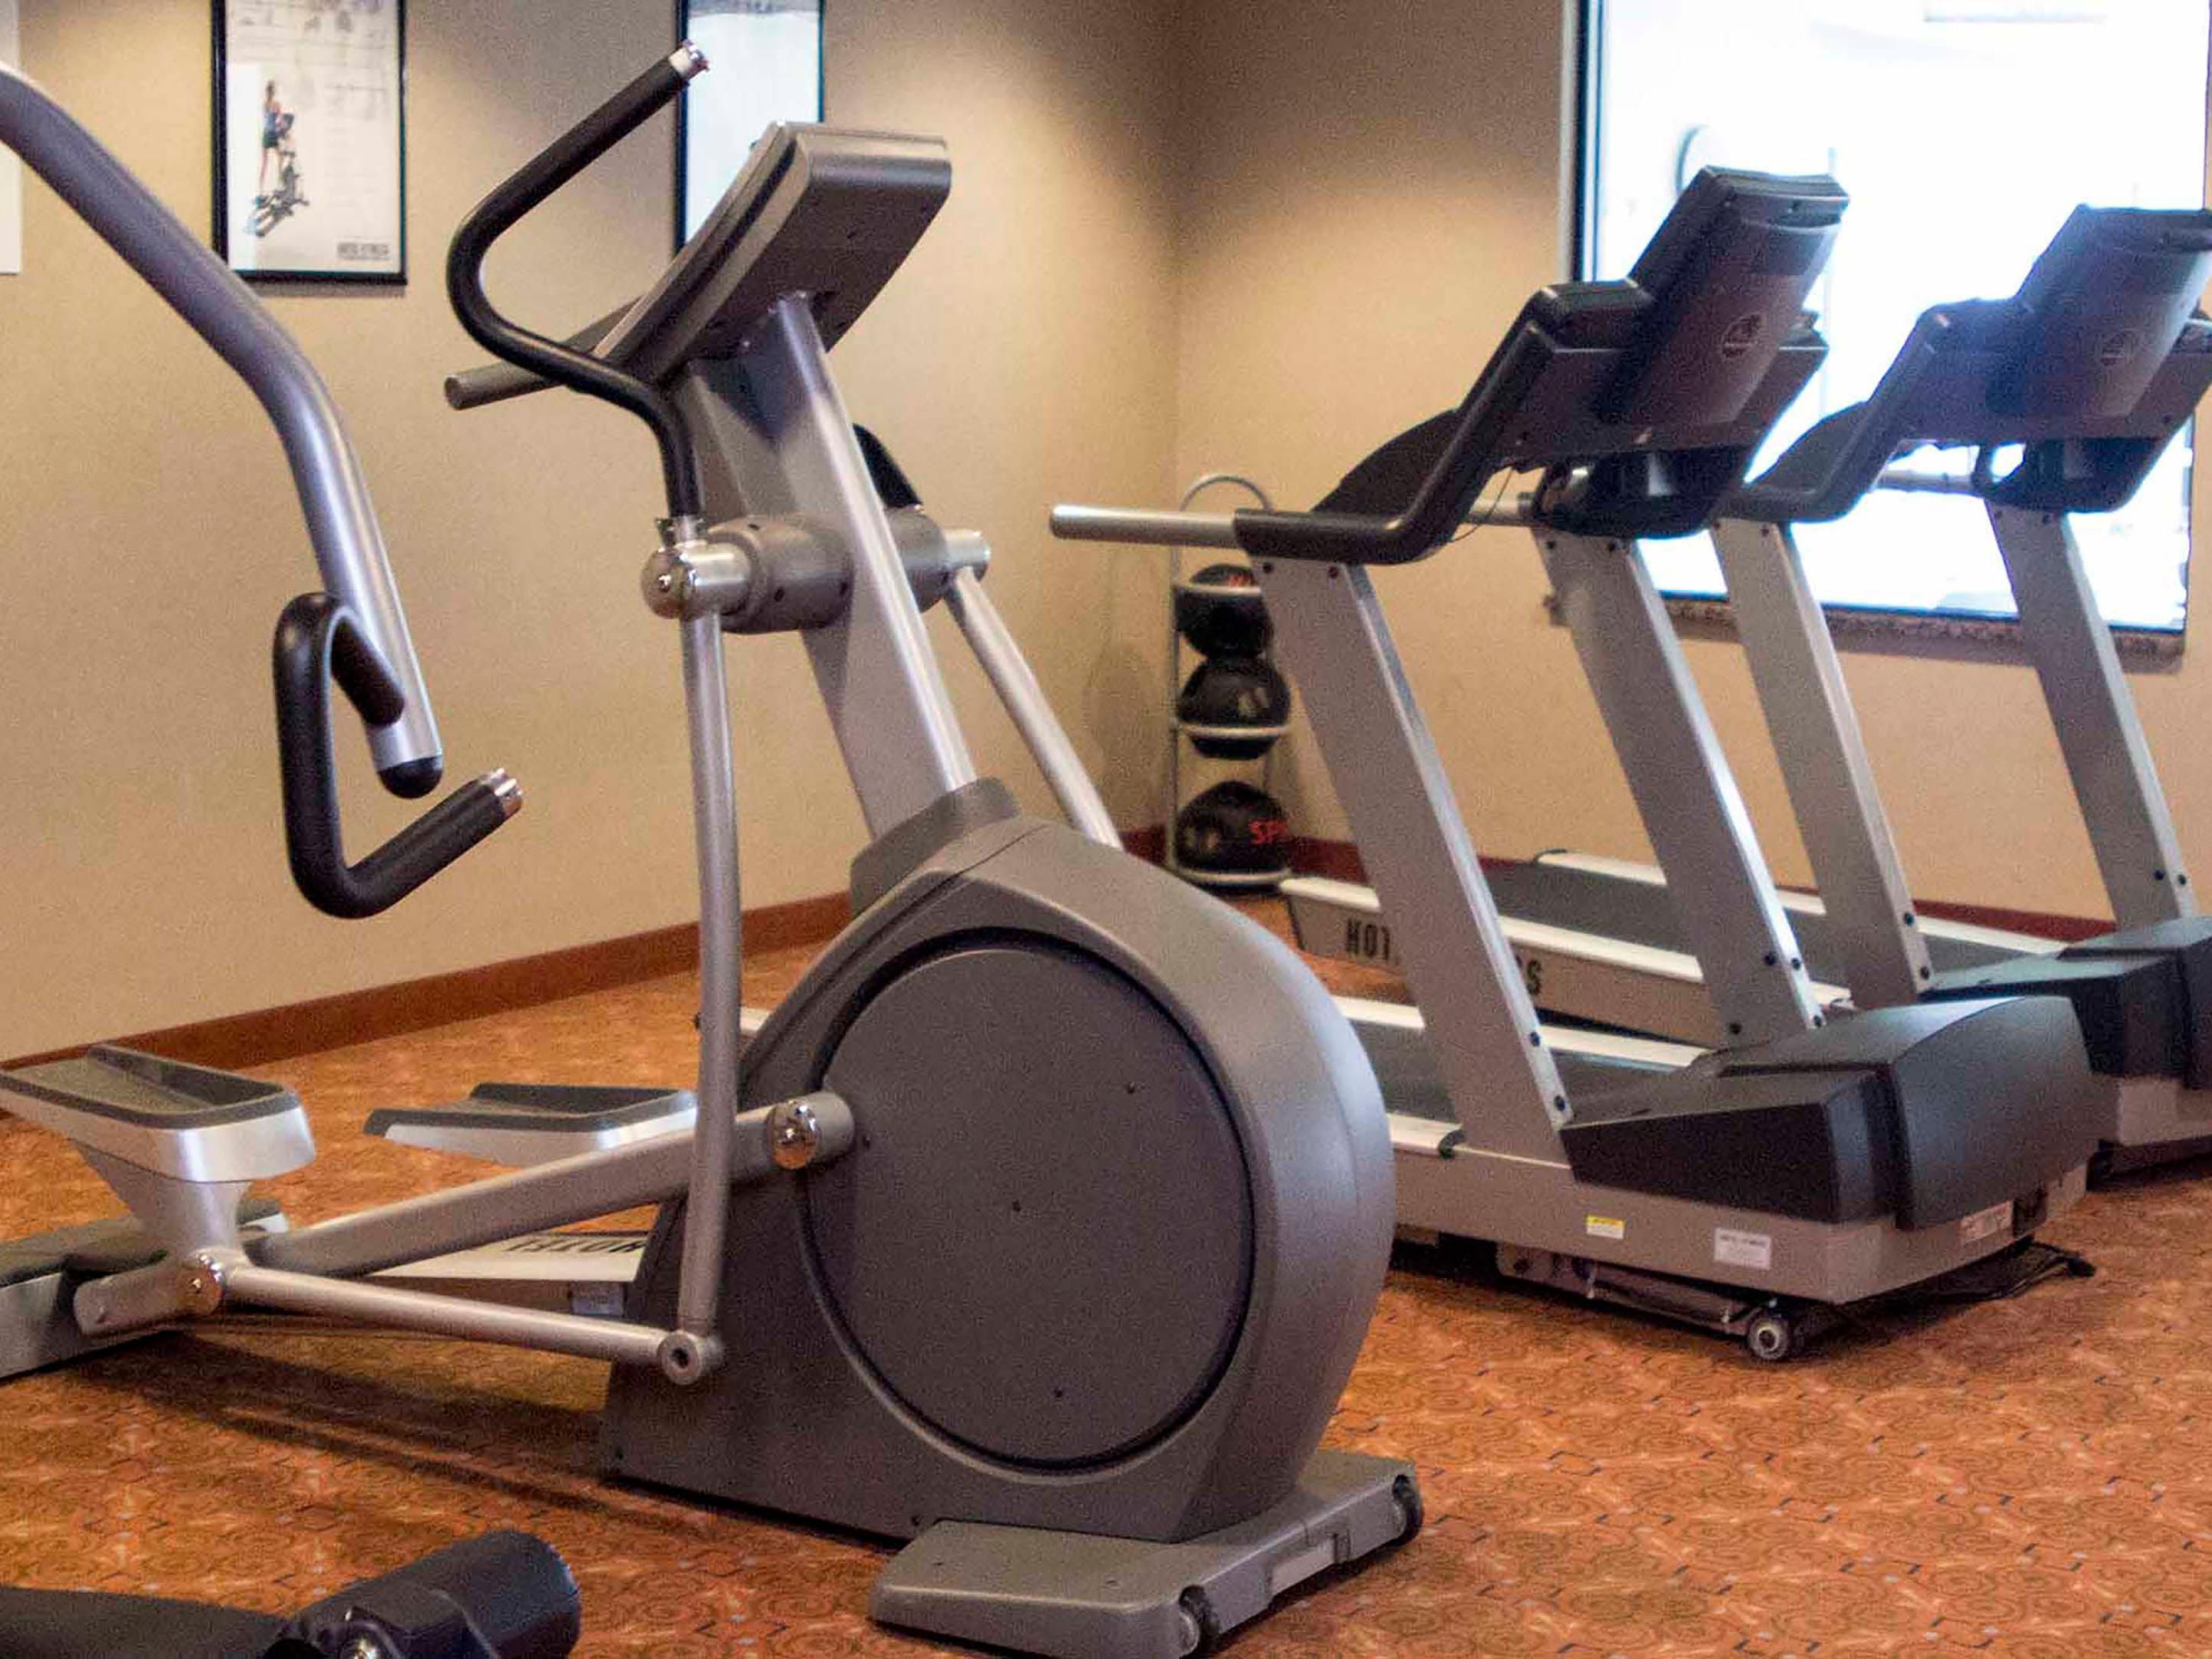 Weight Machine, Two Treadmills, and Eliptical - Fitness Center